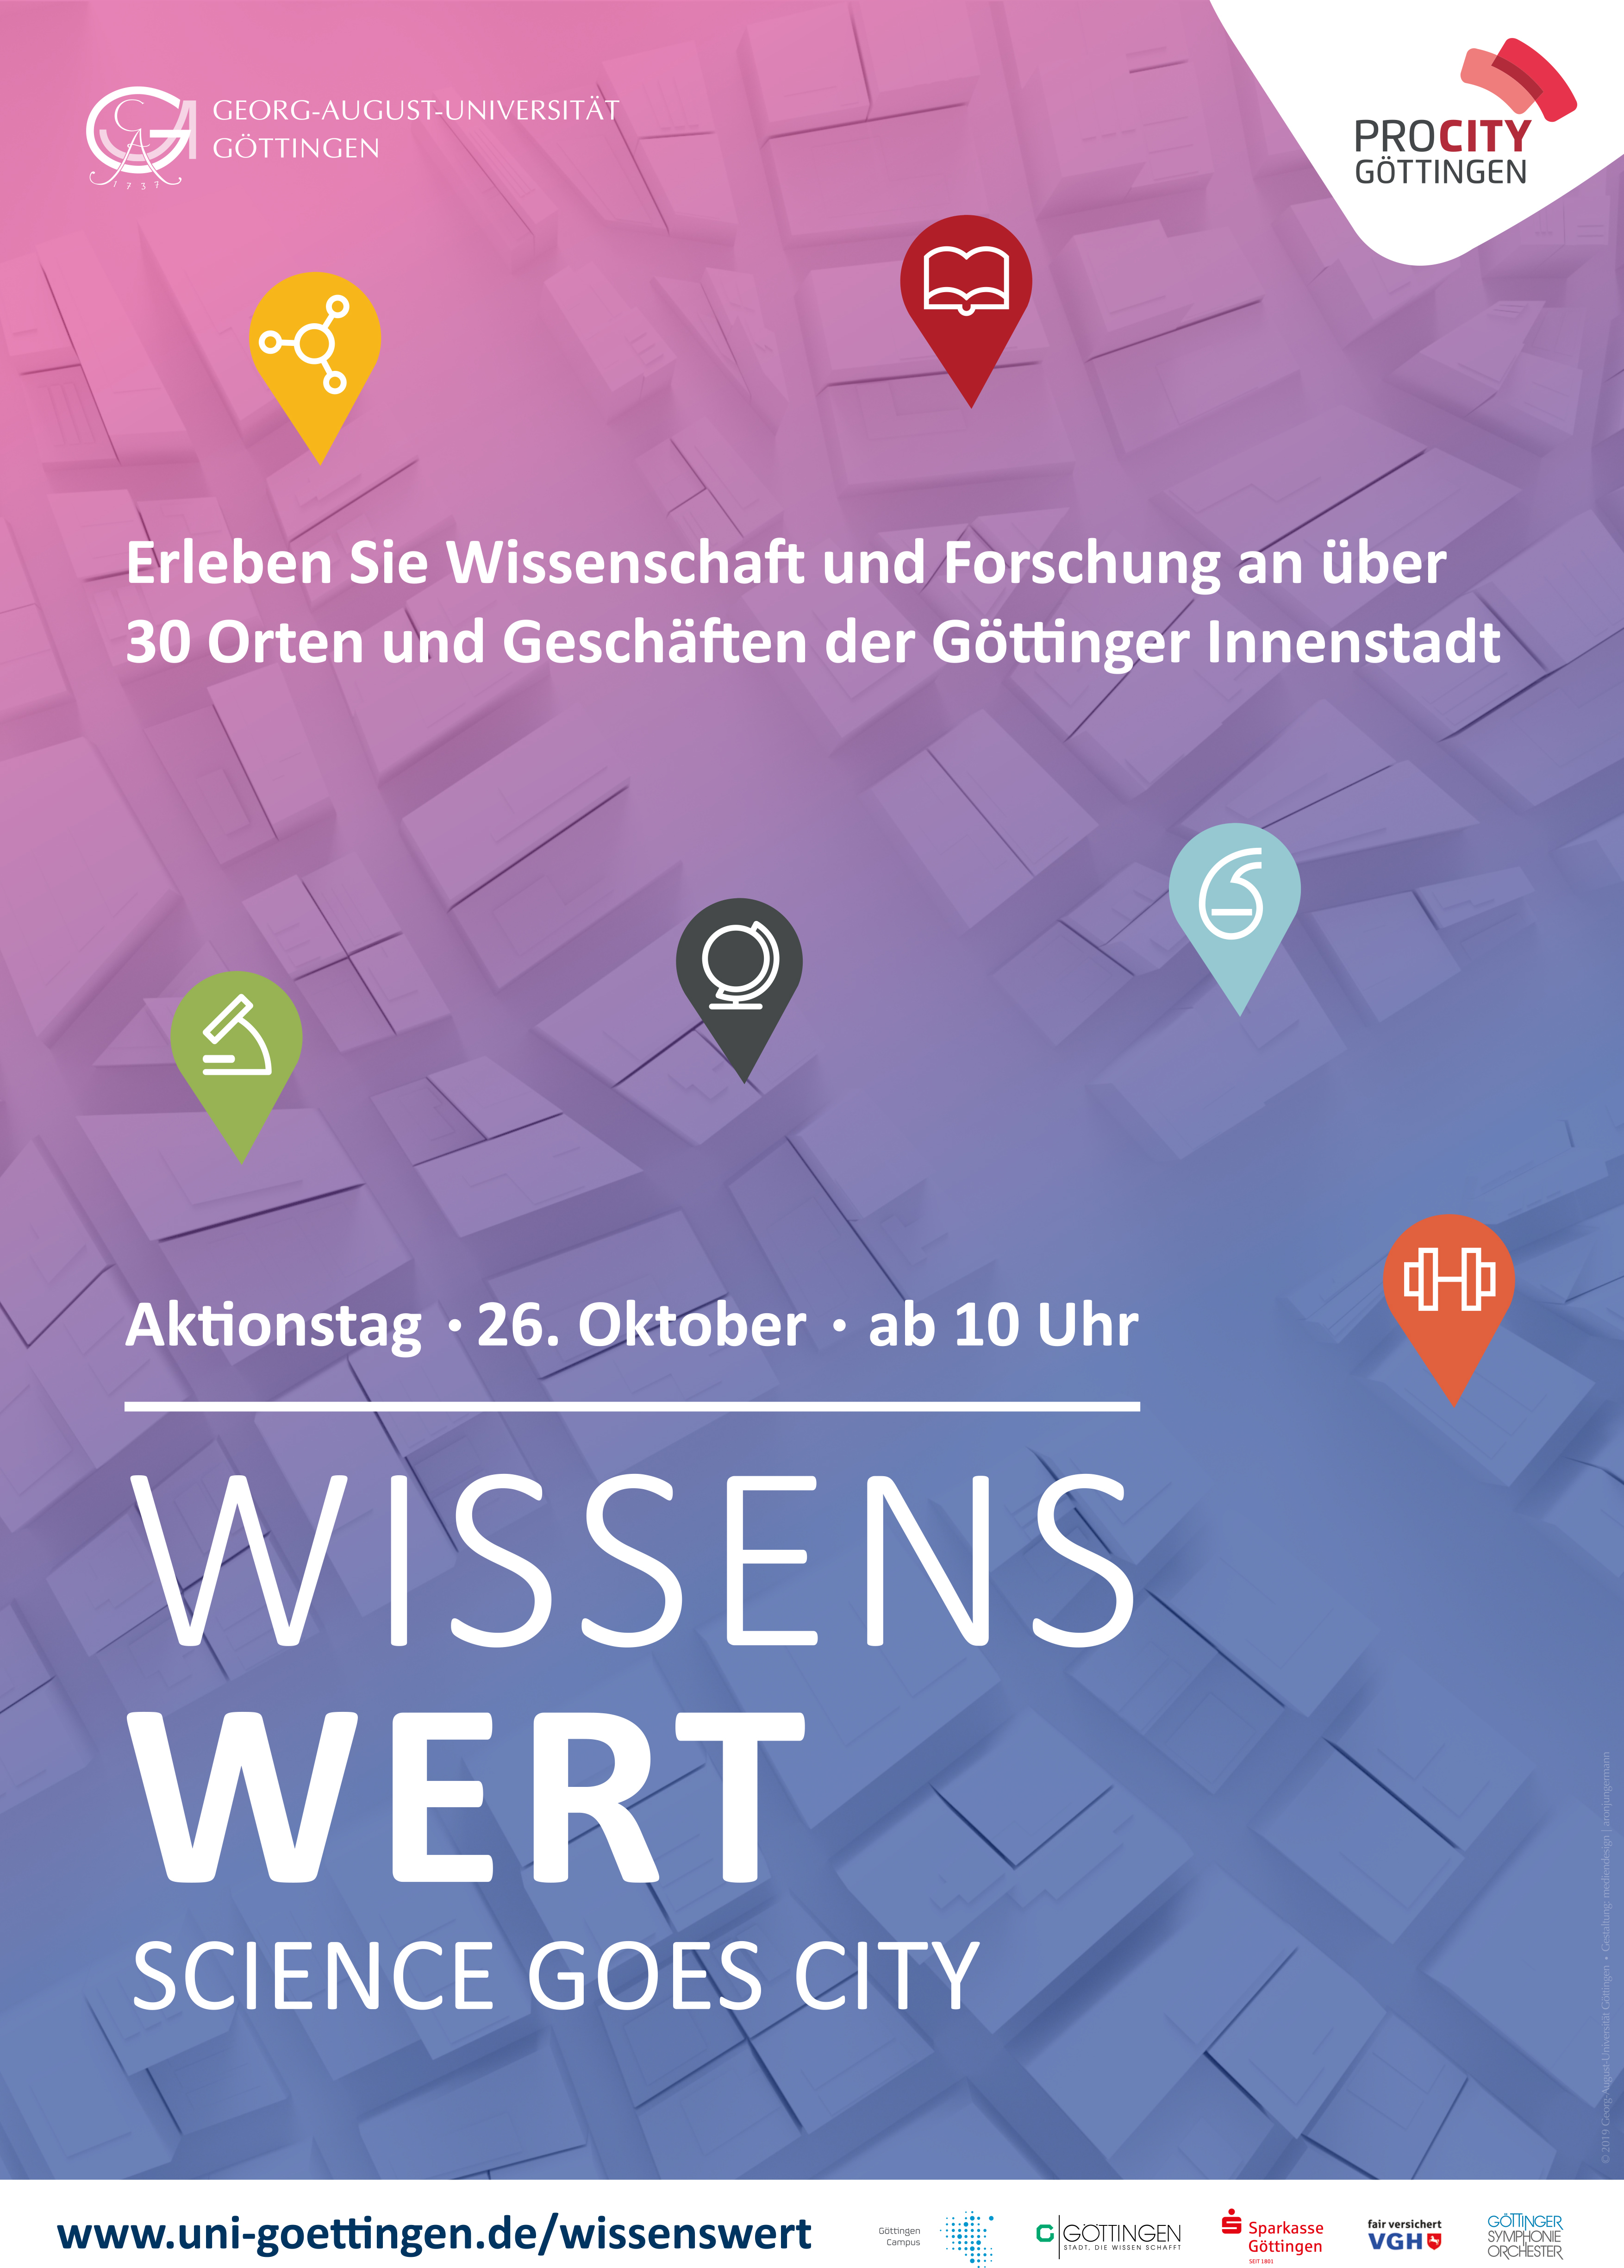 Wissenswert-Science goes City